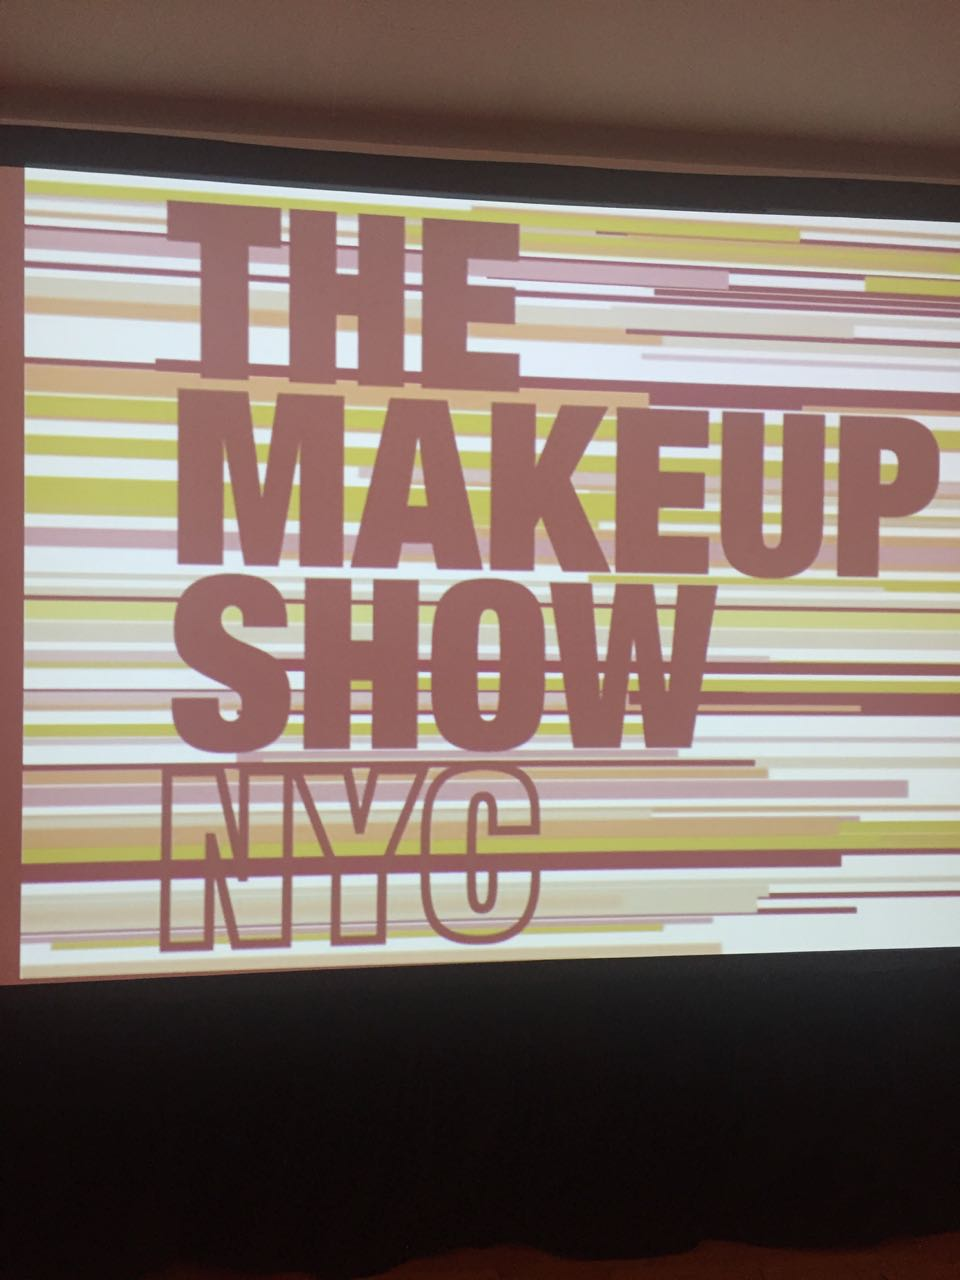 The Makeup Show Is The Largest Pro-Glam Event Worth Visiting